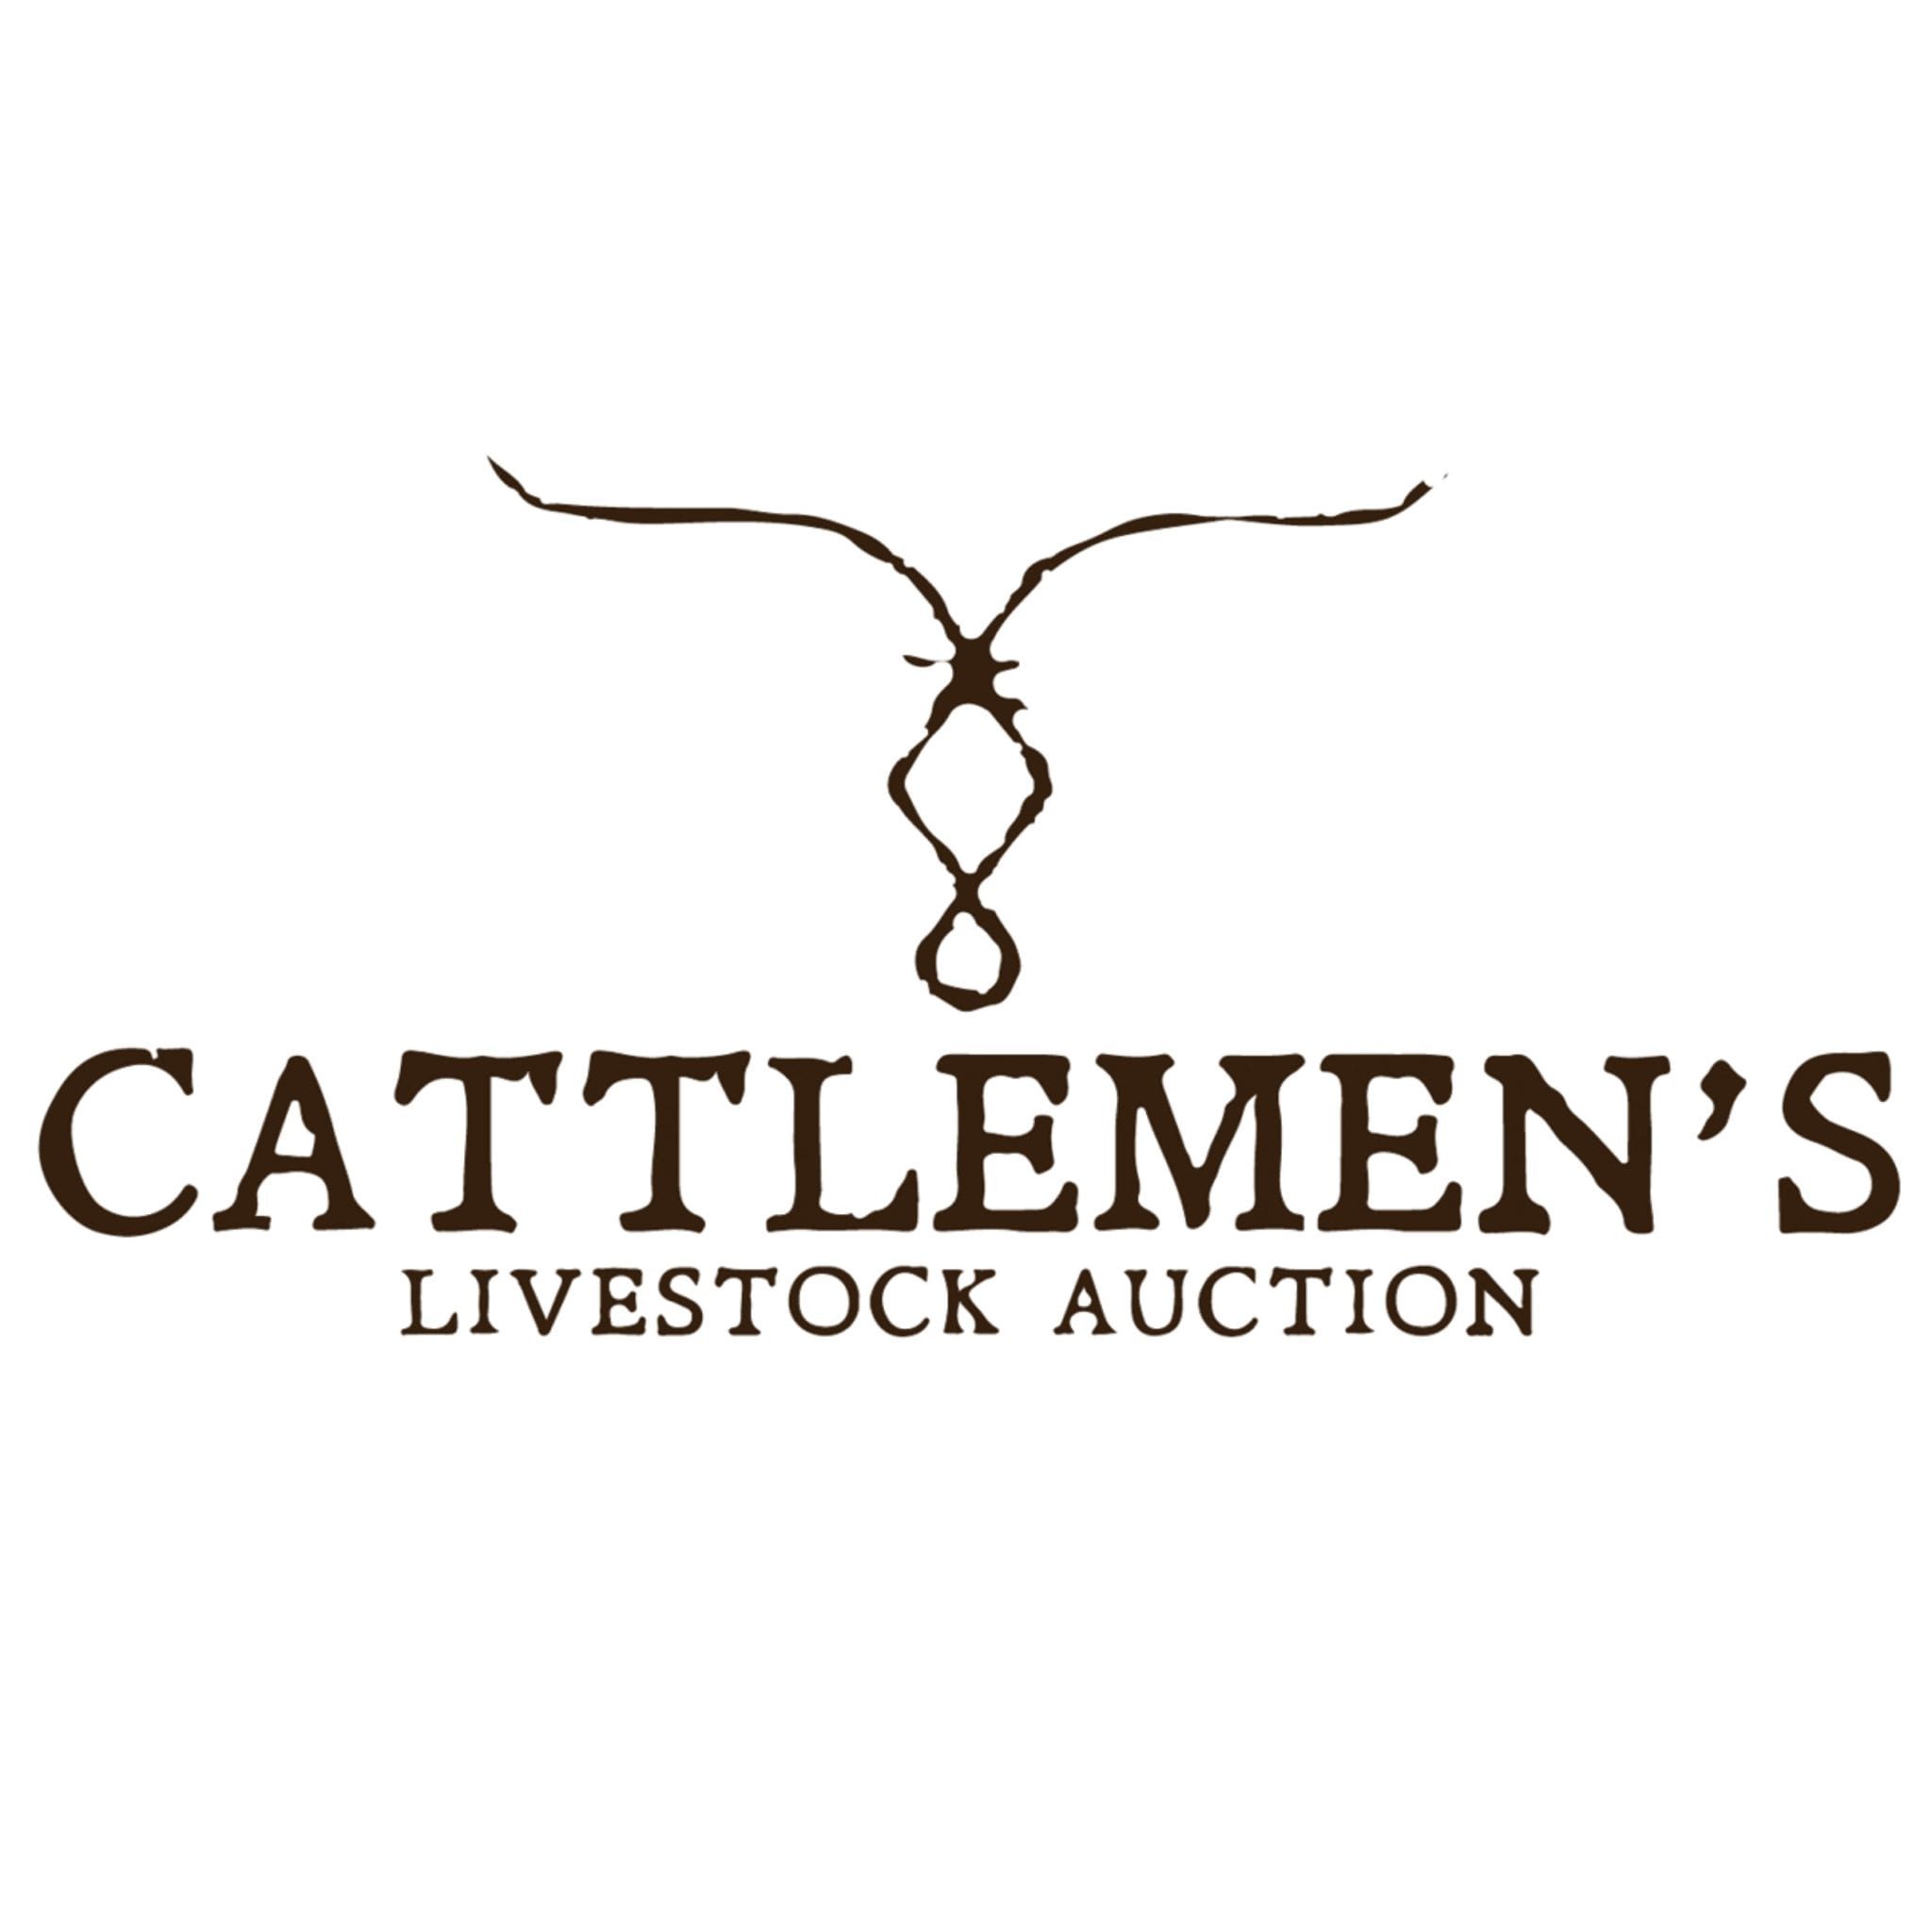 Cattlemens Livestock Auction - Advertising Agency Springfield Missouri